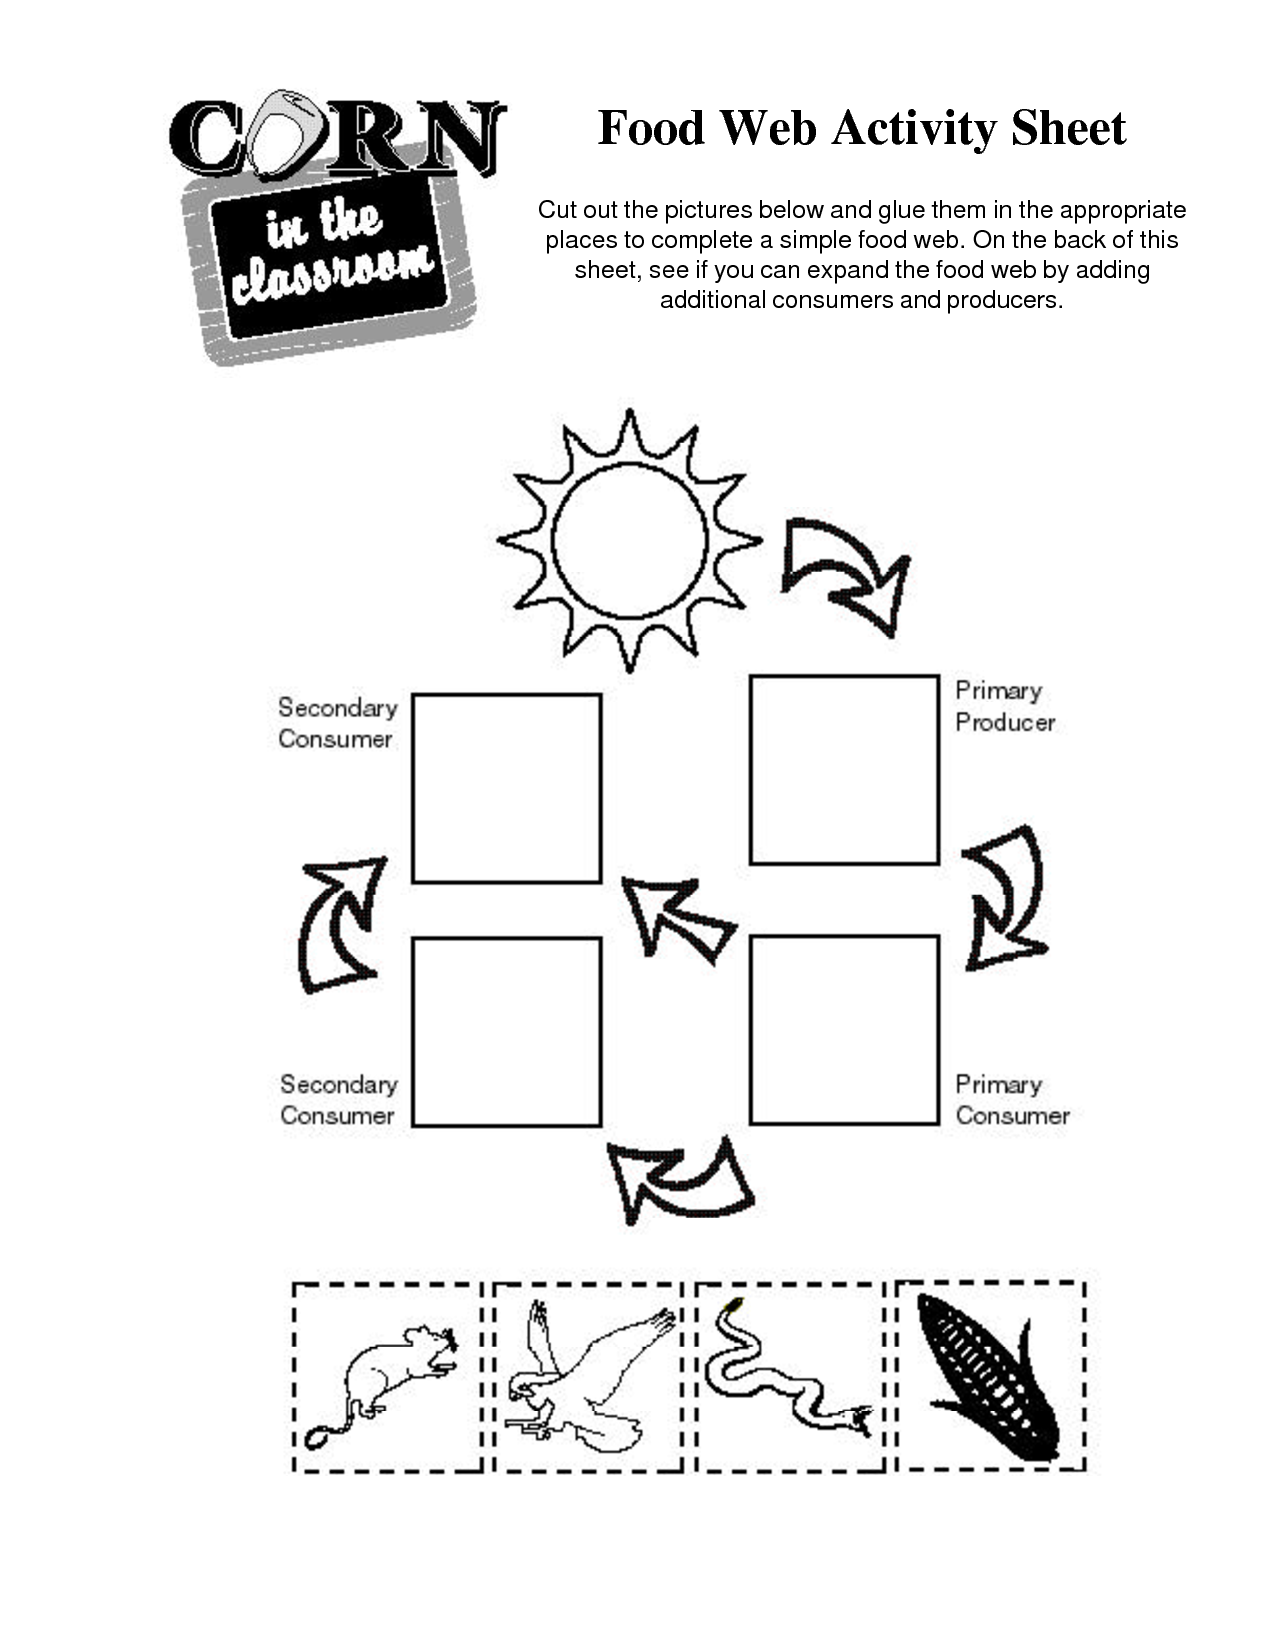 Food Web Activity Sheet